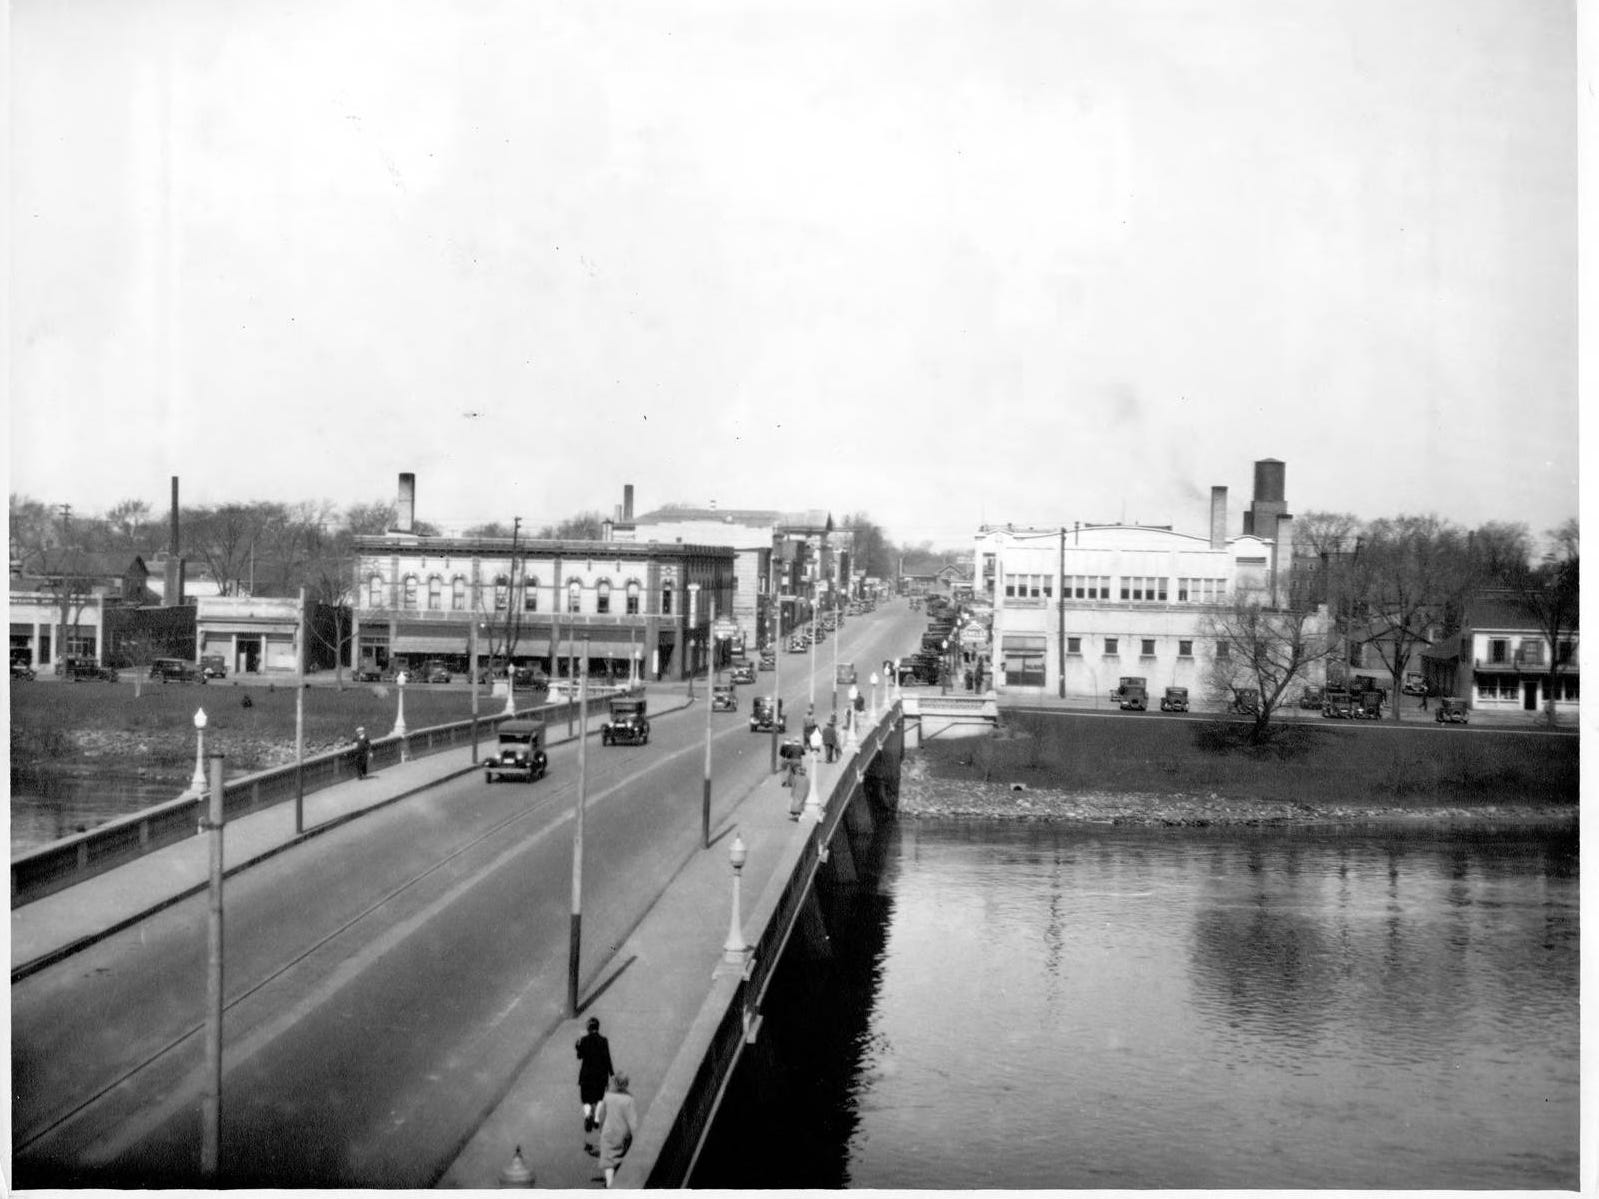 The Nash and River blocks can be seen from this photo over the Grand Avenue bridge. The Mead-Witter Block building rises above the River Block on the right side of the bridge.